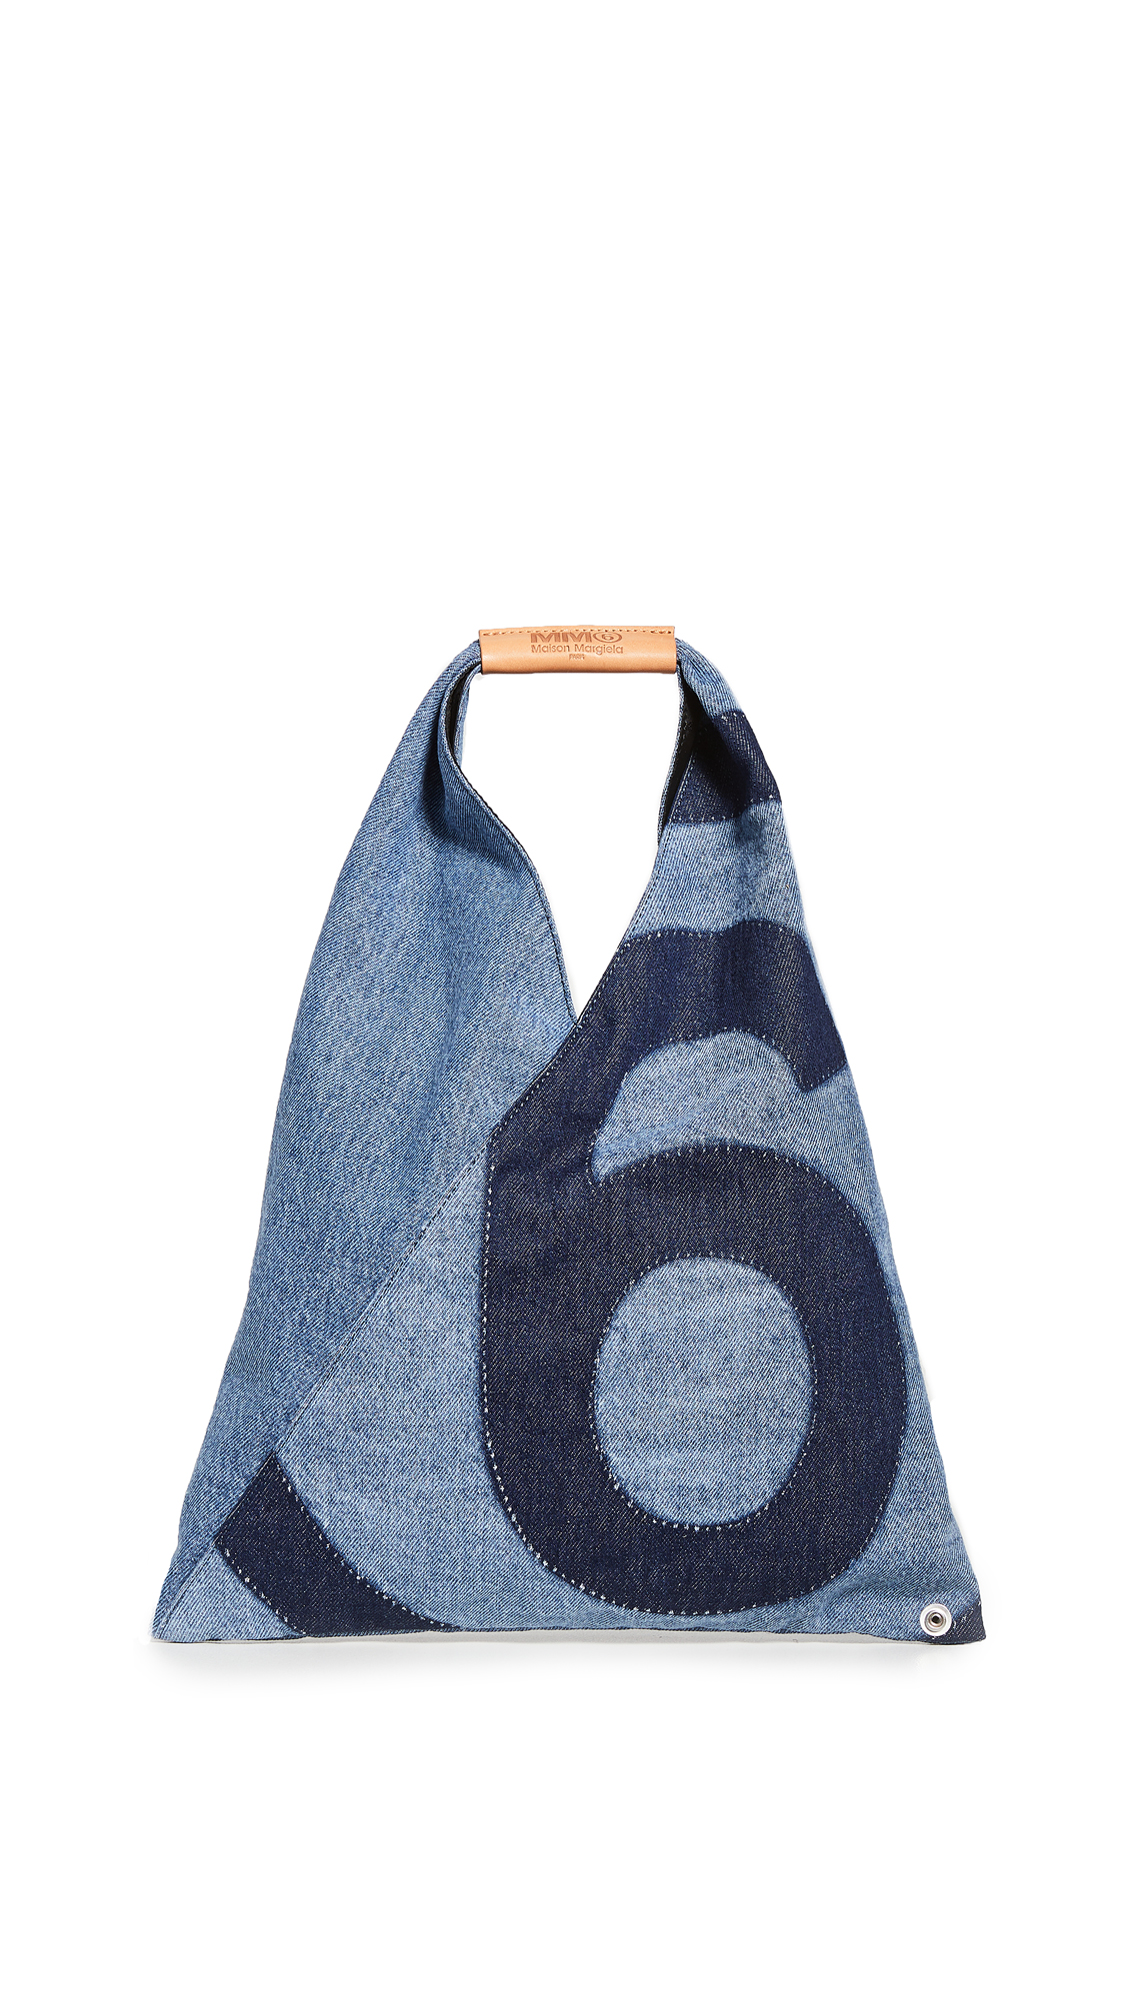 MM6 MAISON MARGIELA SMALL DENIM ORIGAMI TOTE